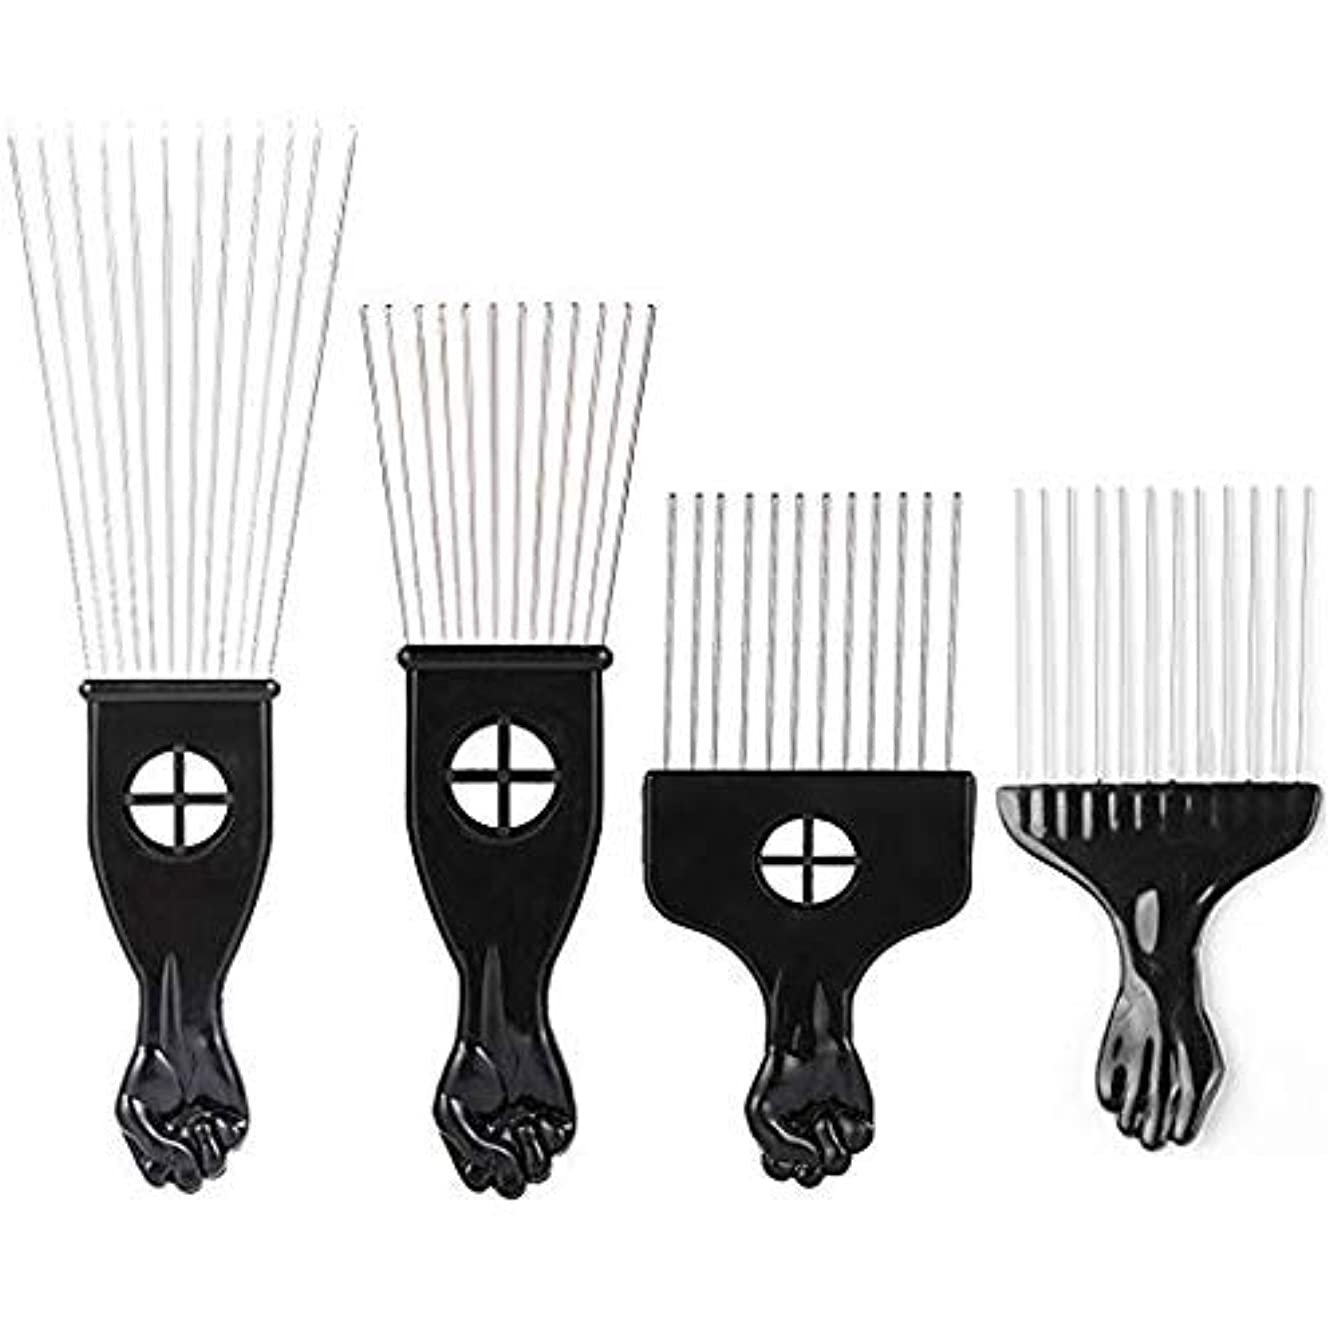 かび臭いハウス余裕があるBorogo Afro Combs, 4-Pack Afro Pick w/Black Fist - Metal African American Pick Comb Straight Hair Brush Hairdressing...